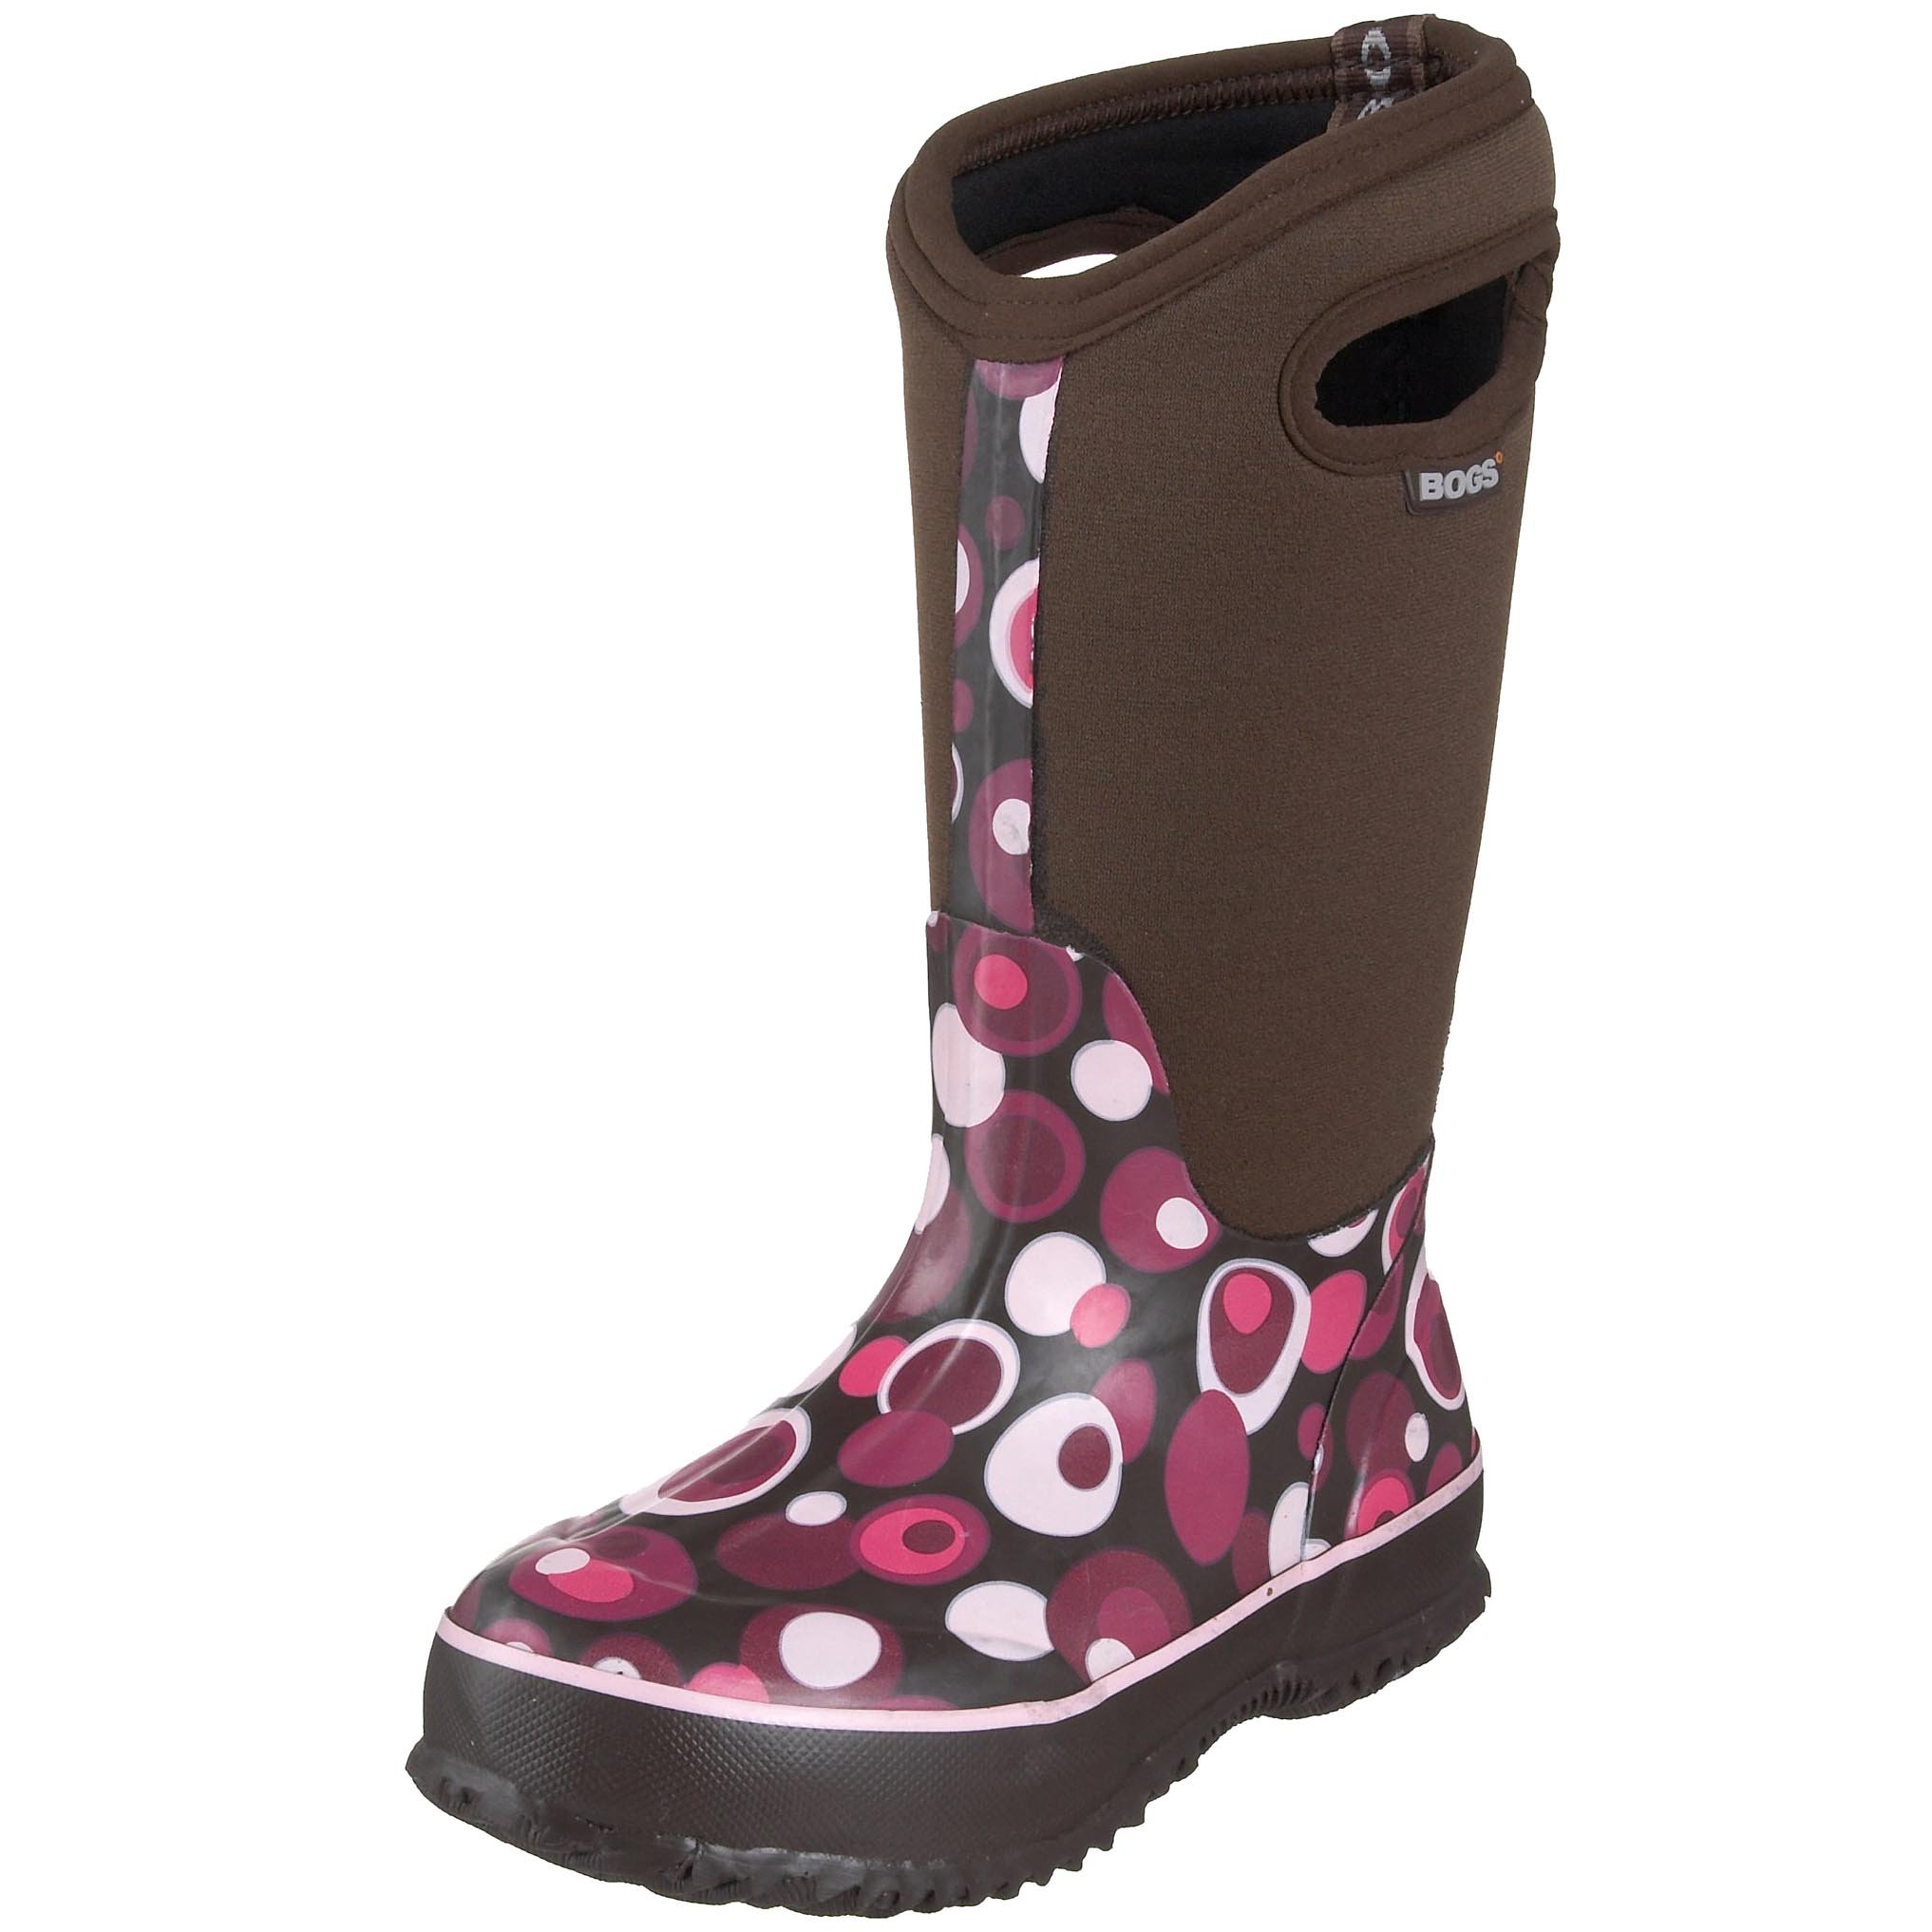 Bogs Kids Classic High Waterproof Insulated Rubber Neoprene Rain Boot, Bubbles Print/Chocolate/Multi, 10 M US Toddler